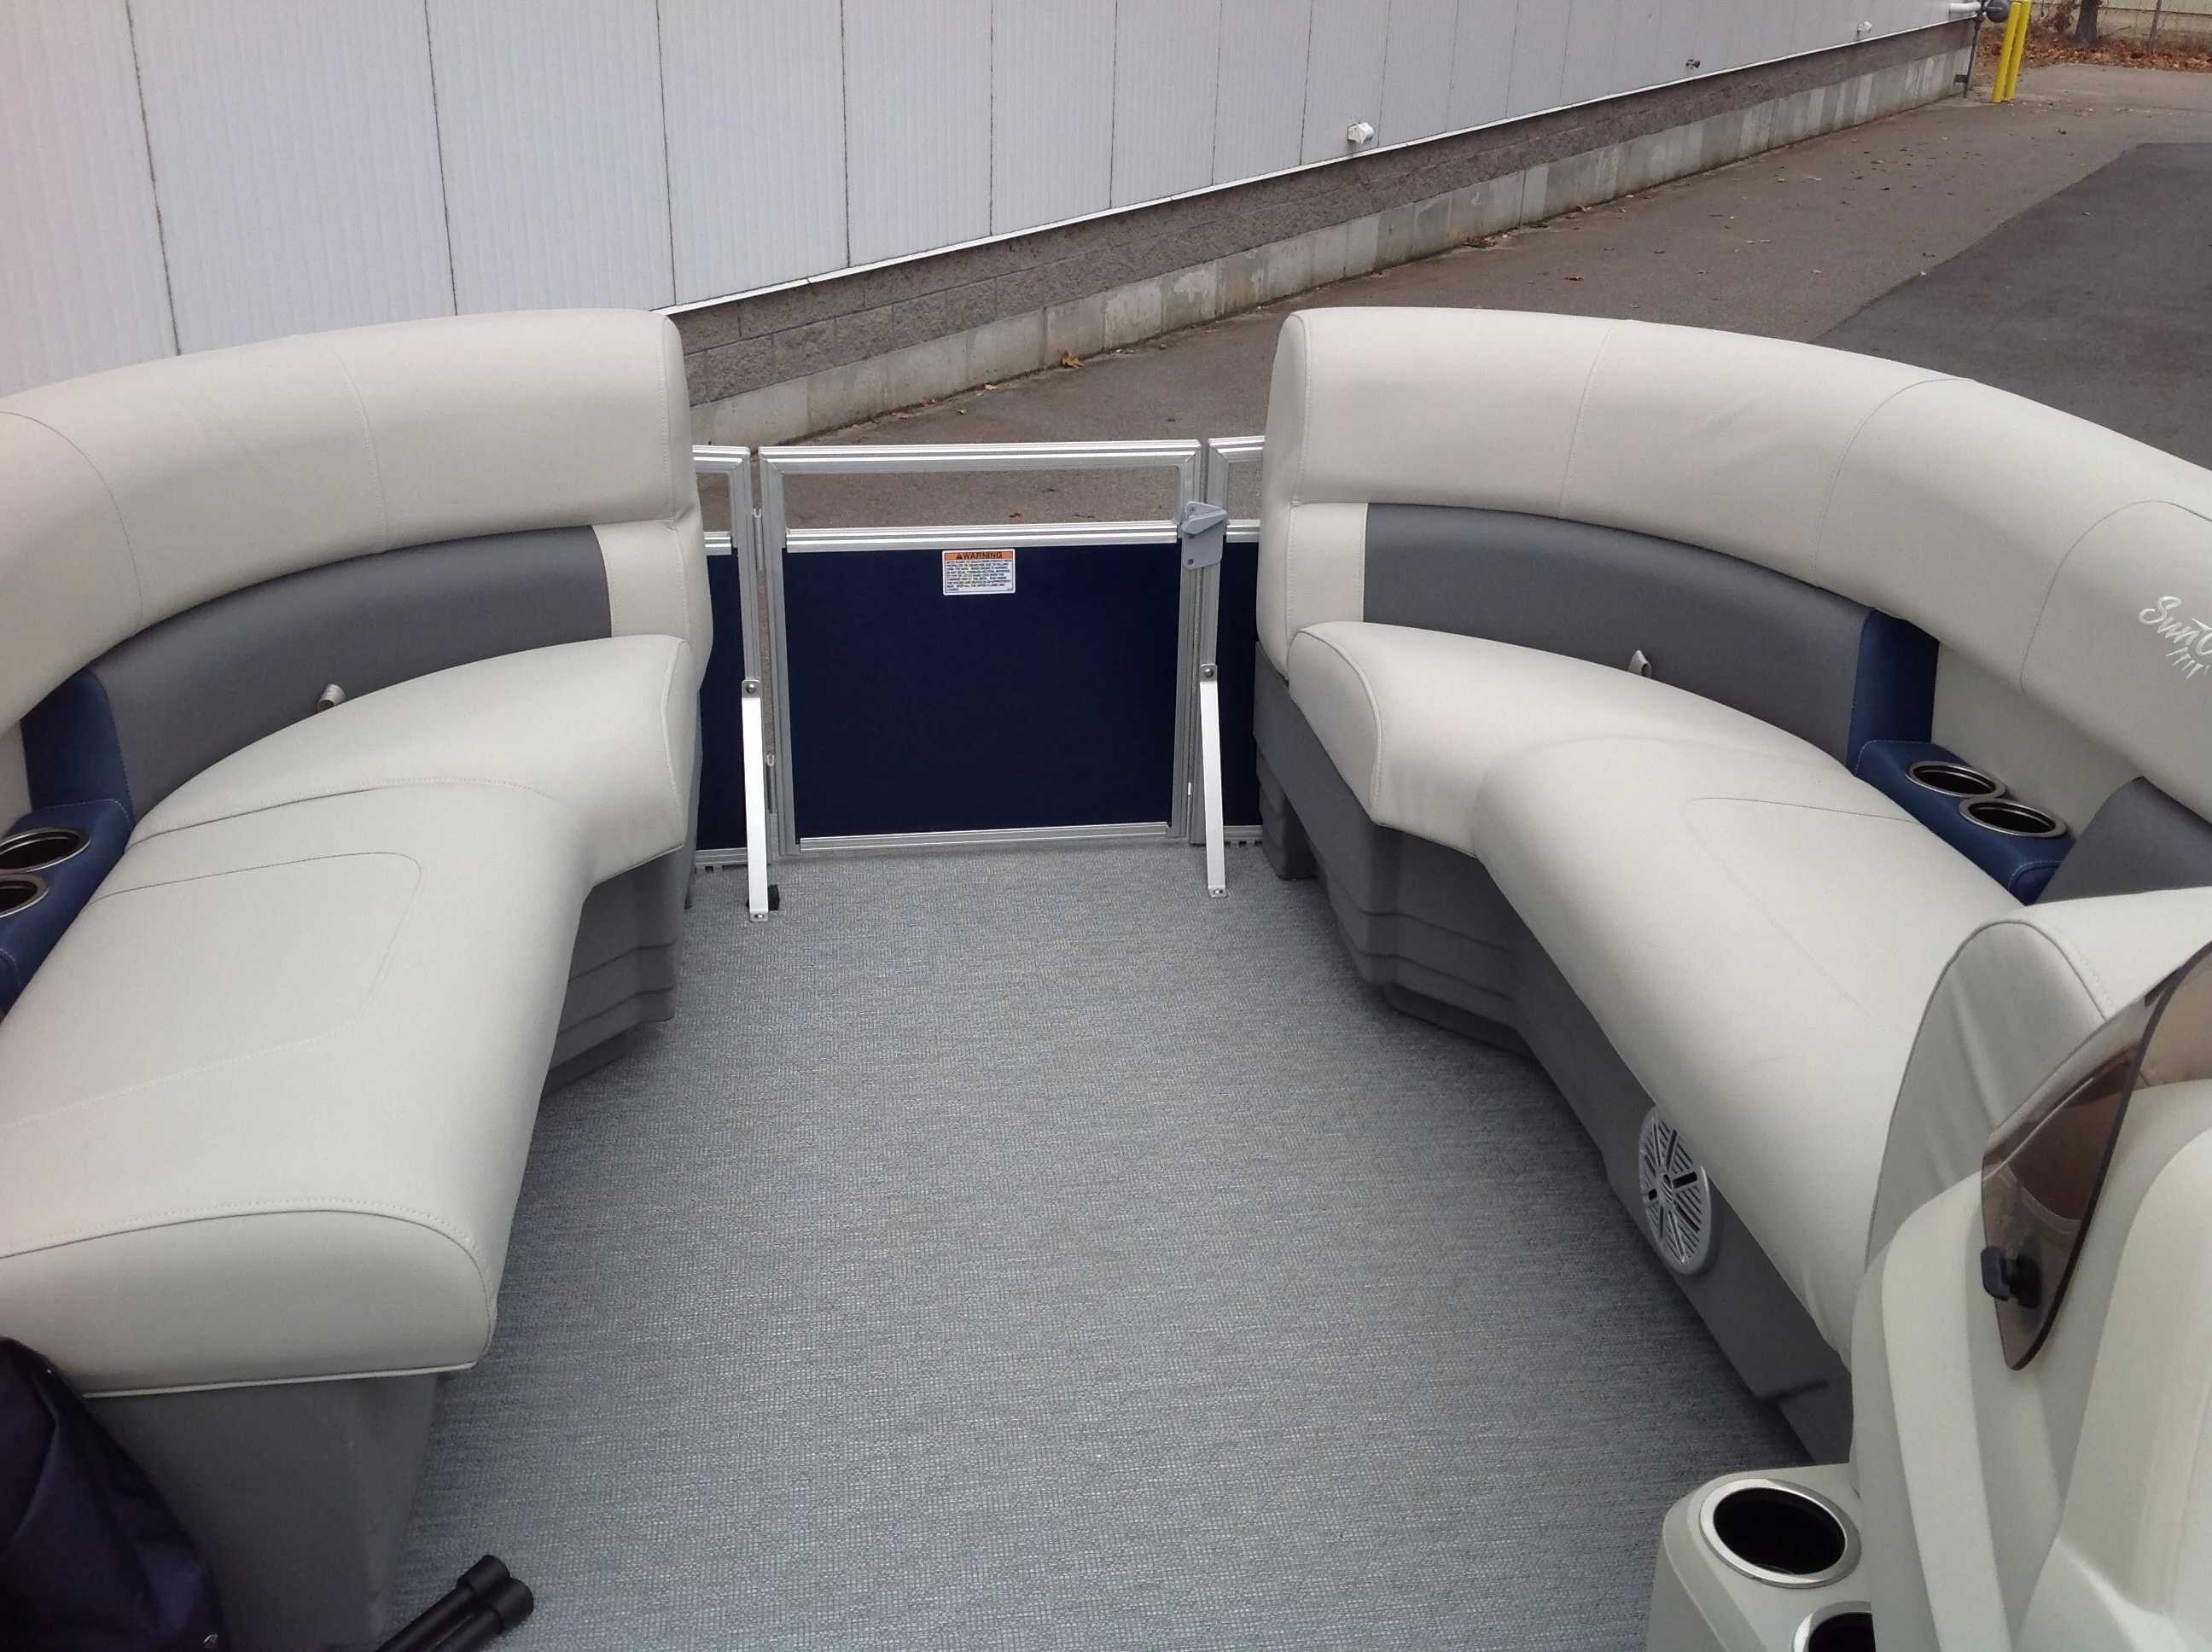 2021 SunChaser boat for sale, model of the boat is Vista & Image # 3 of 8